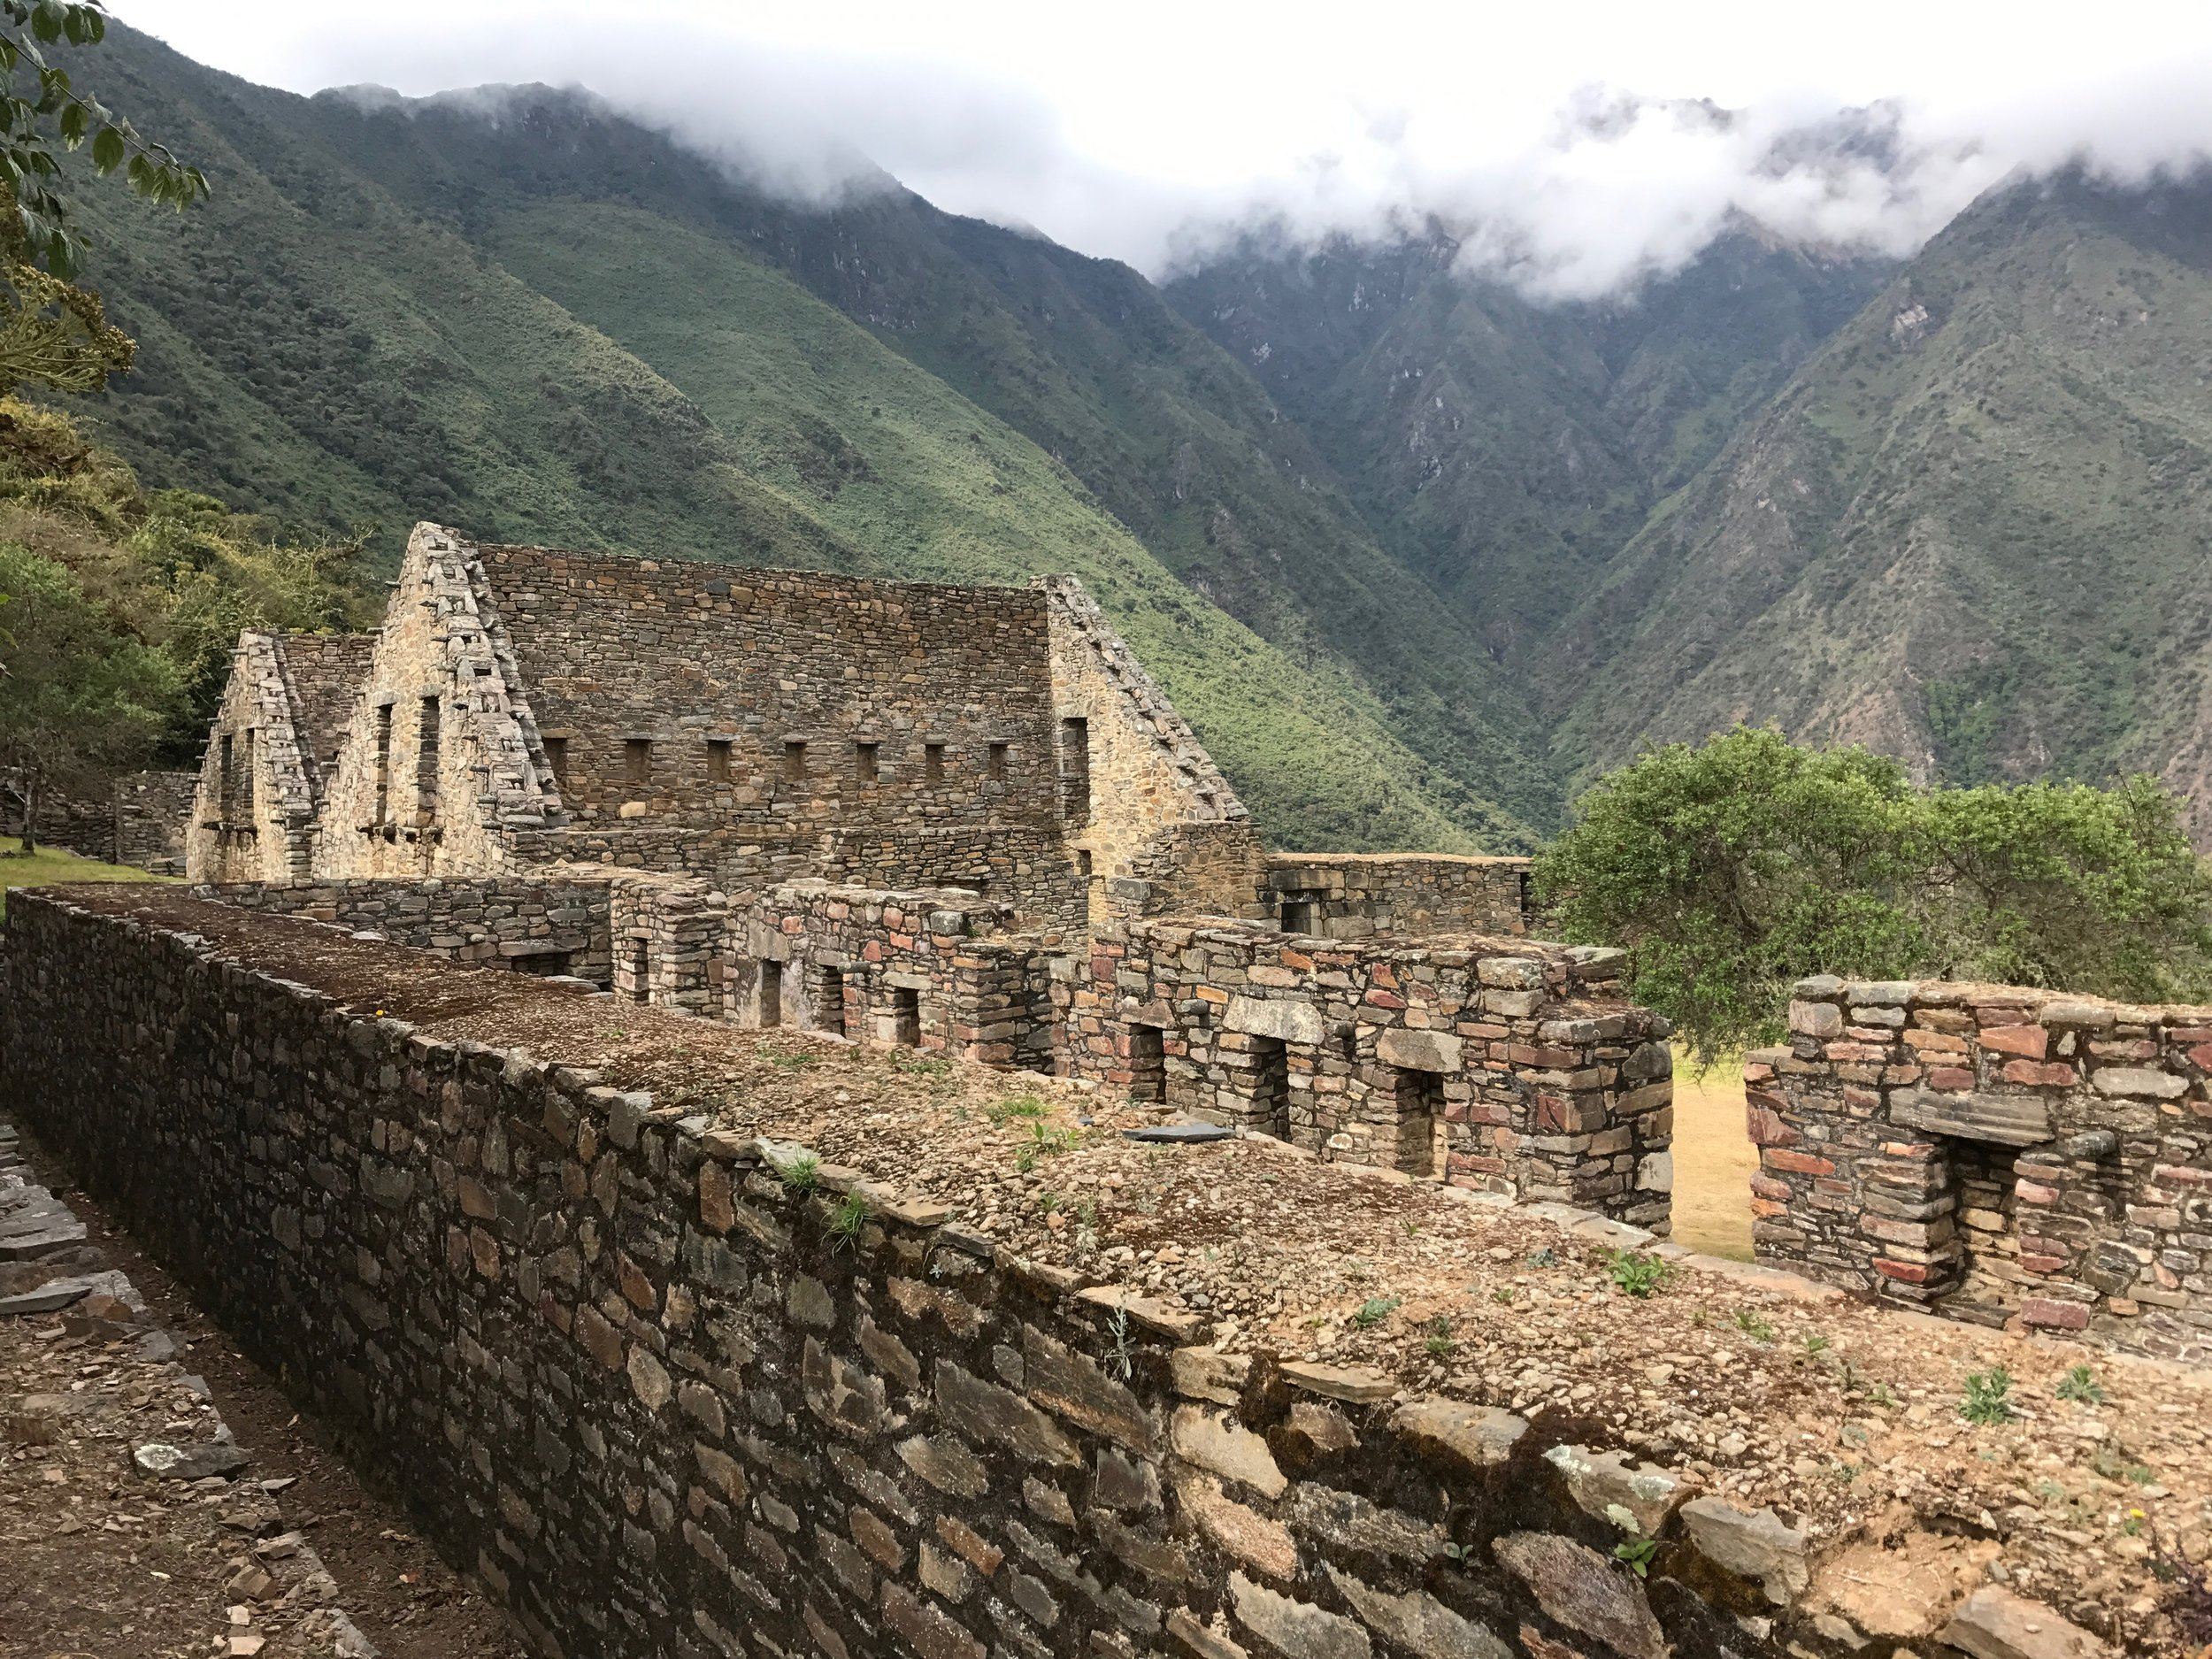 Ruins high in the Andes mountains